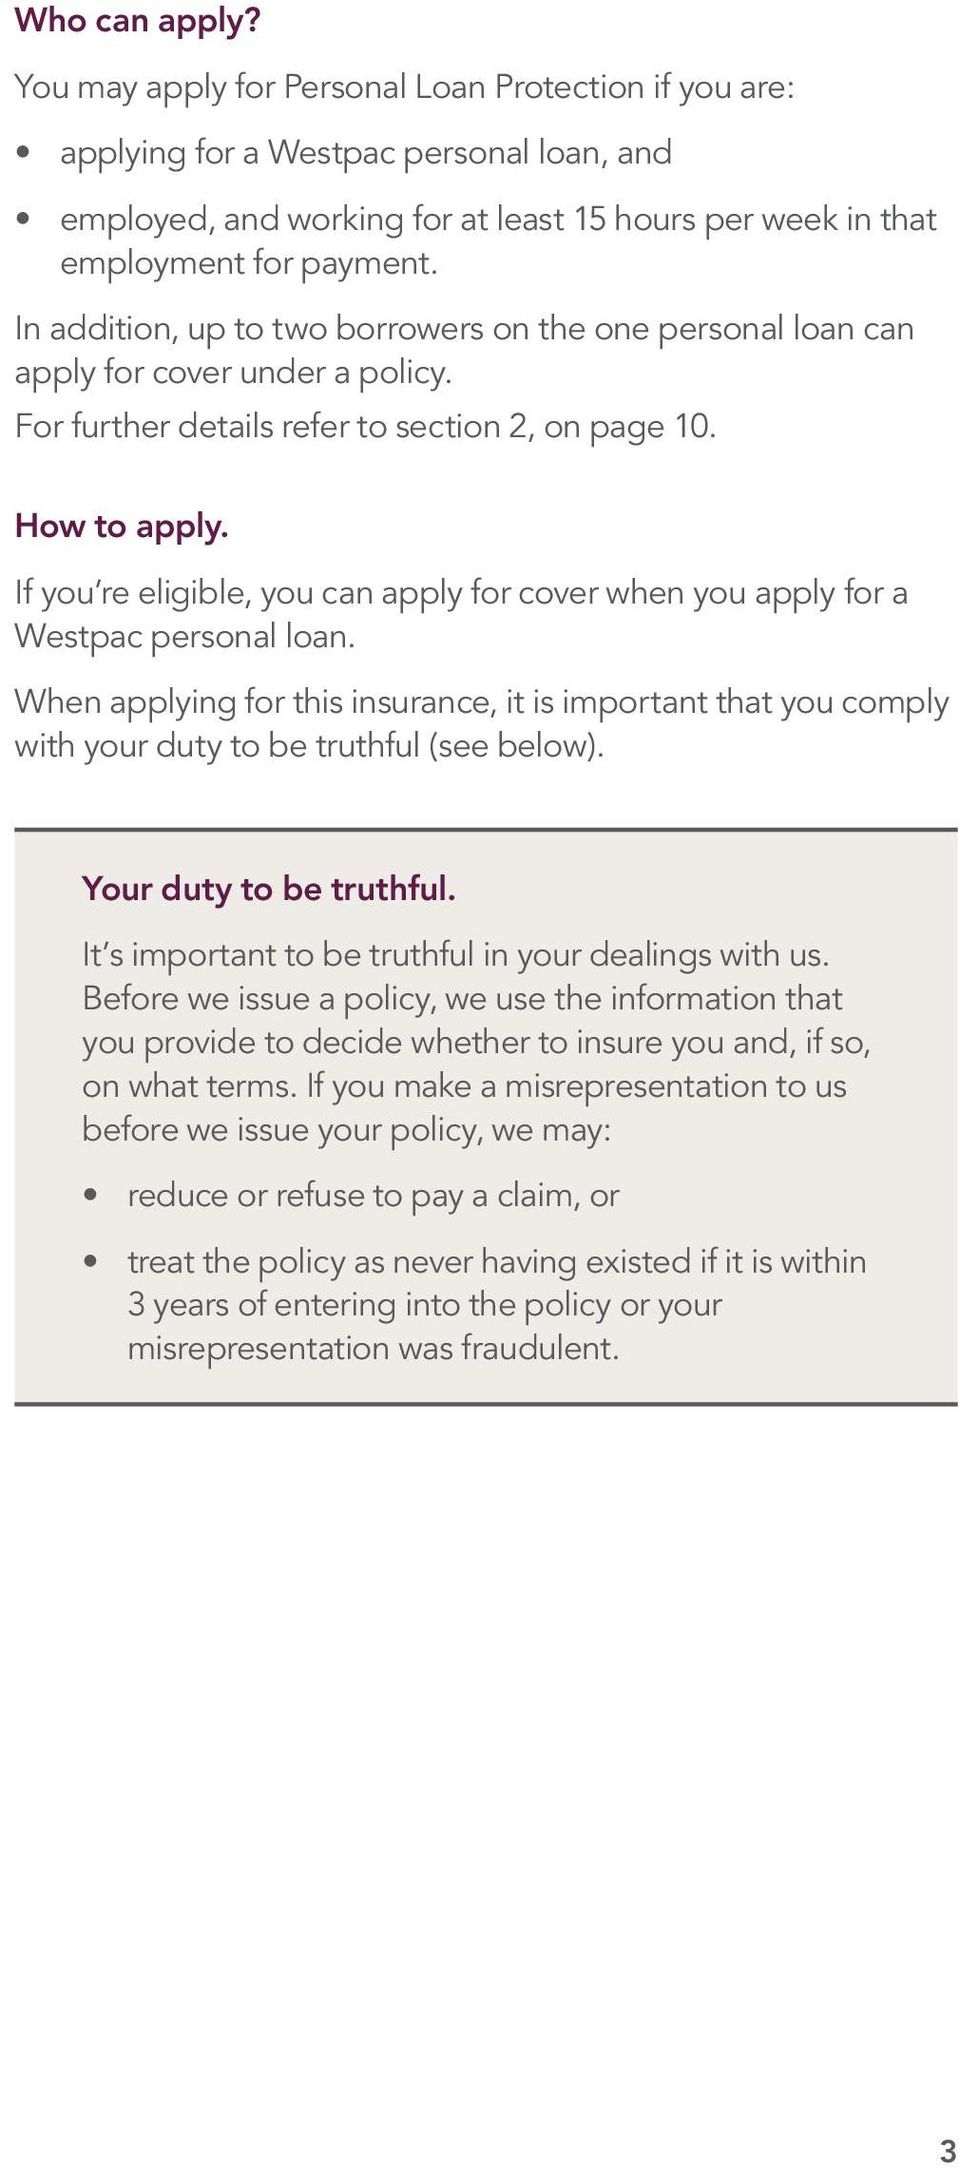 If you re eligible, you can apply for cover when you apply for a Westpac personal loan. When applying for this insurance, it is important that you comply with your duty to be truthful (see below).